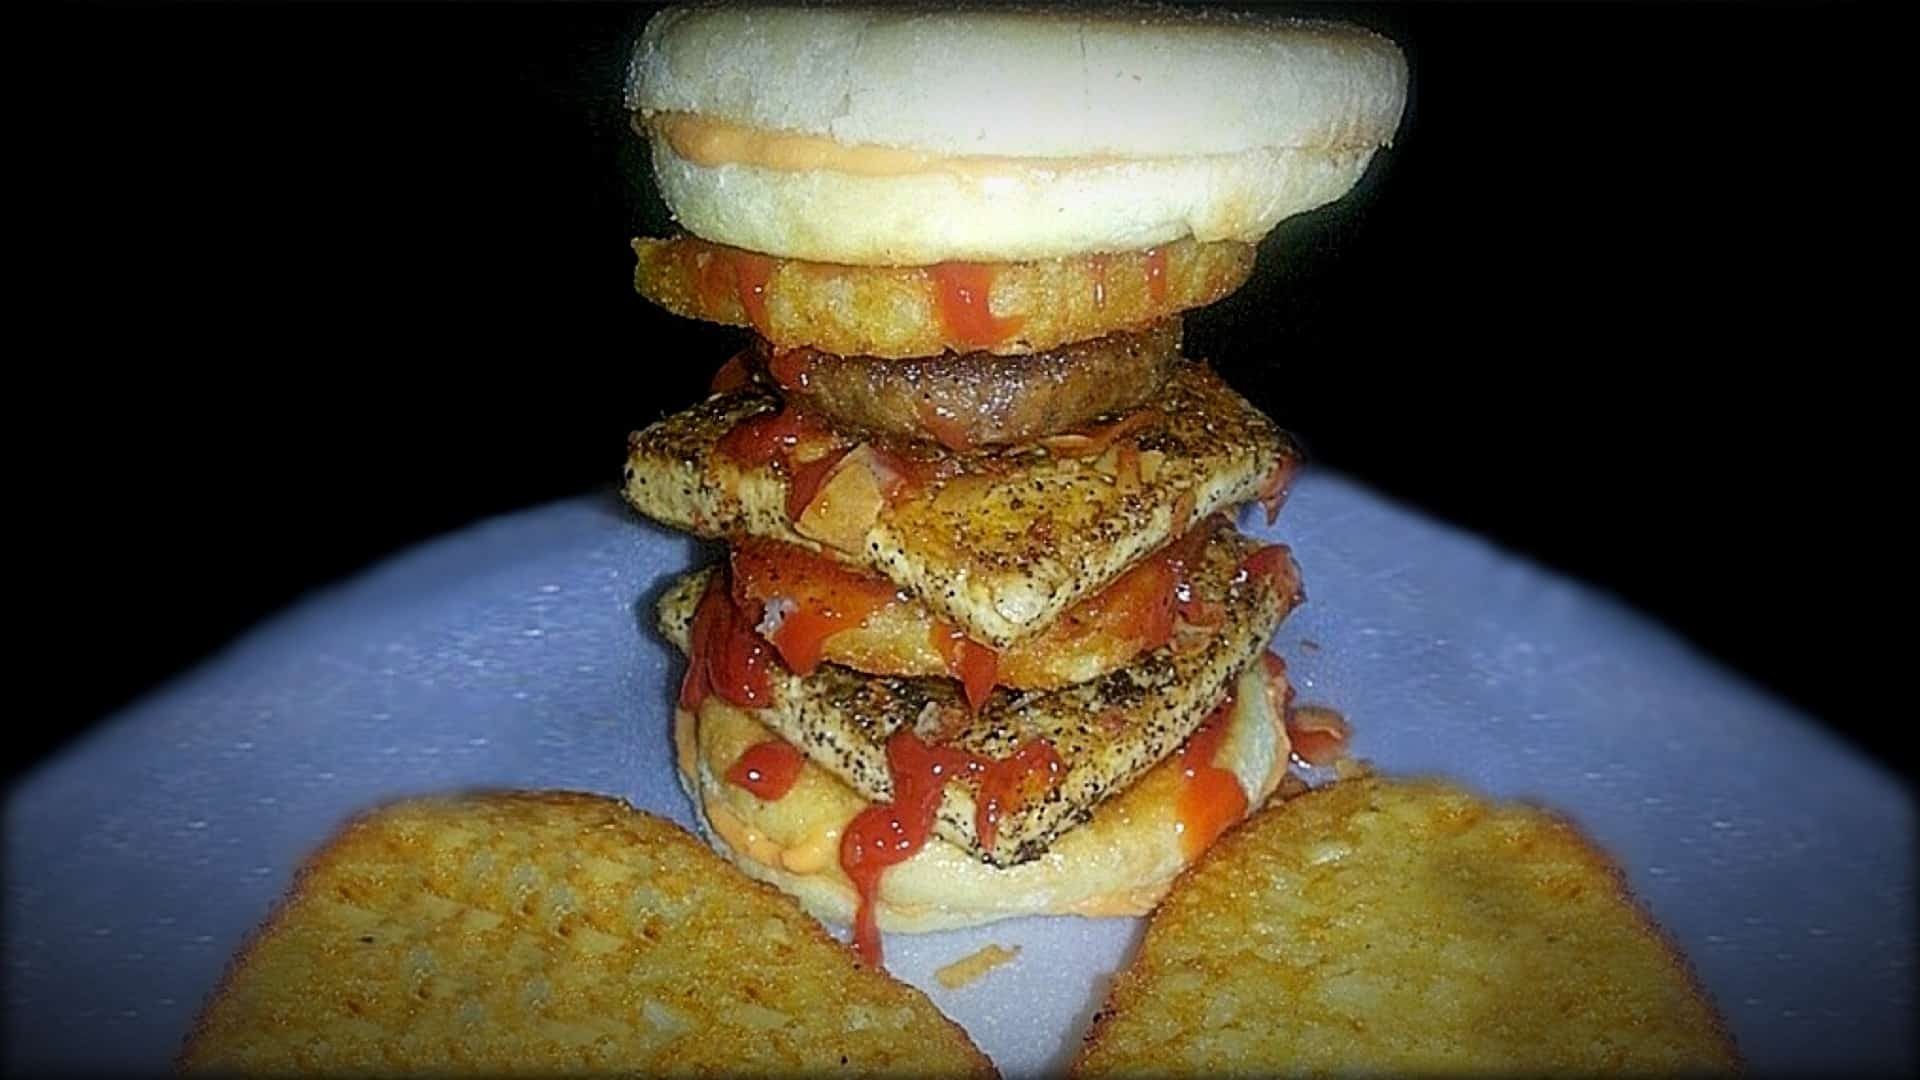 The image shows a close-up of a UnVcMuffin. A vegan creation of Andre aka The Unhealthy Vegan of Instagram fame.